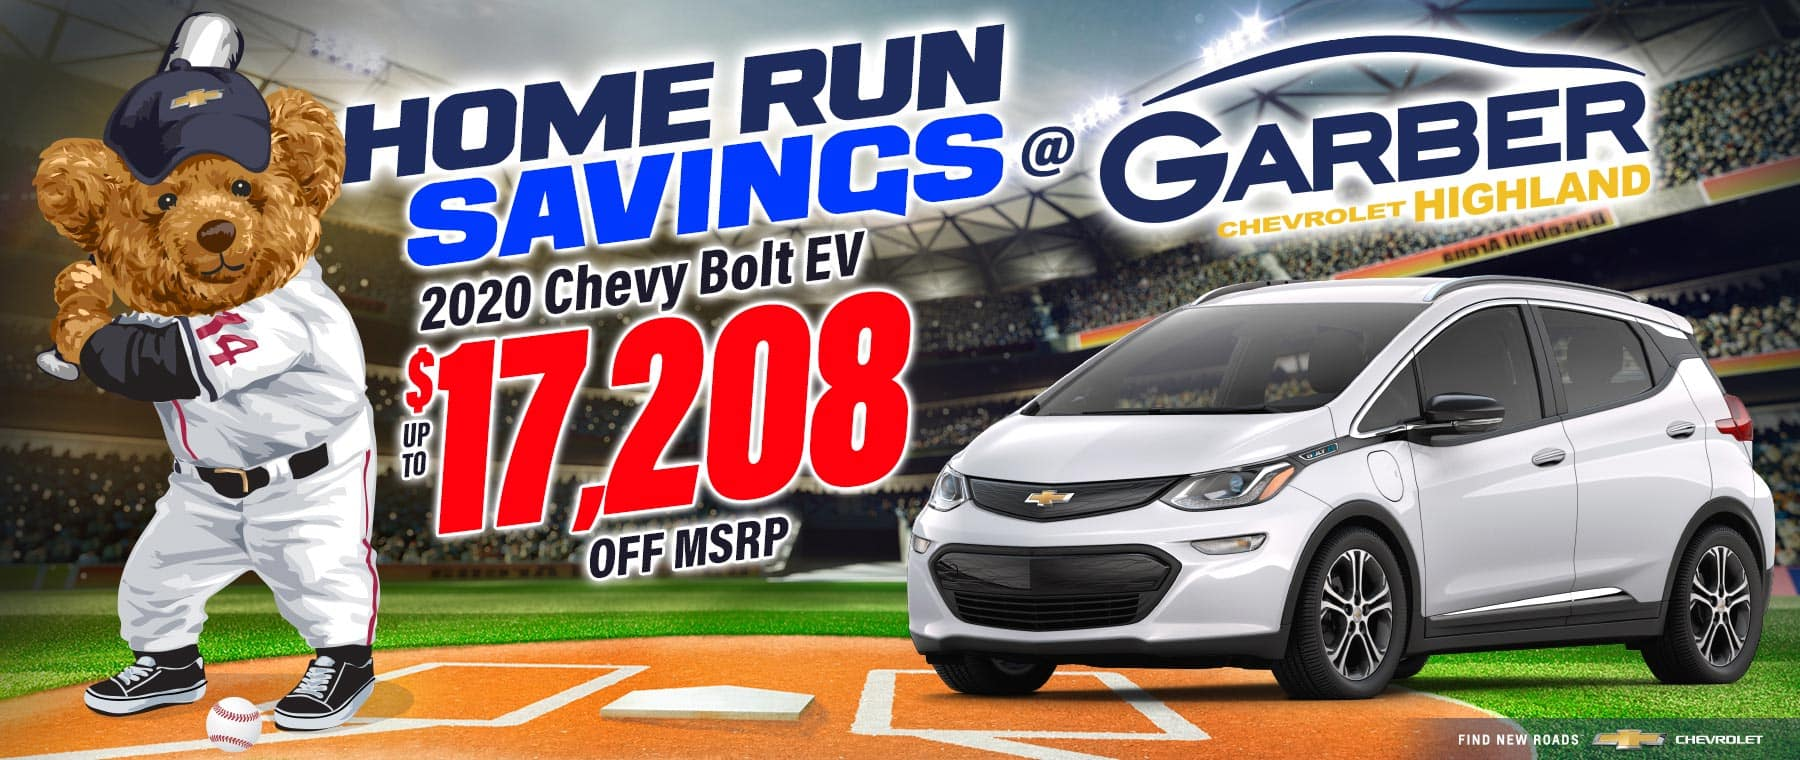 2020 Chevy Bolt - SAVE up to $17,208 off MSRP